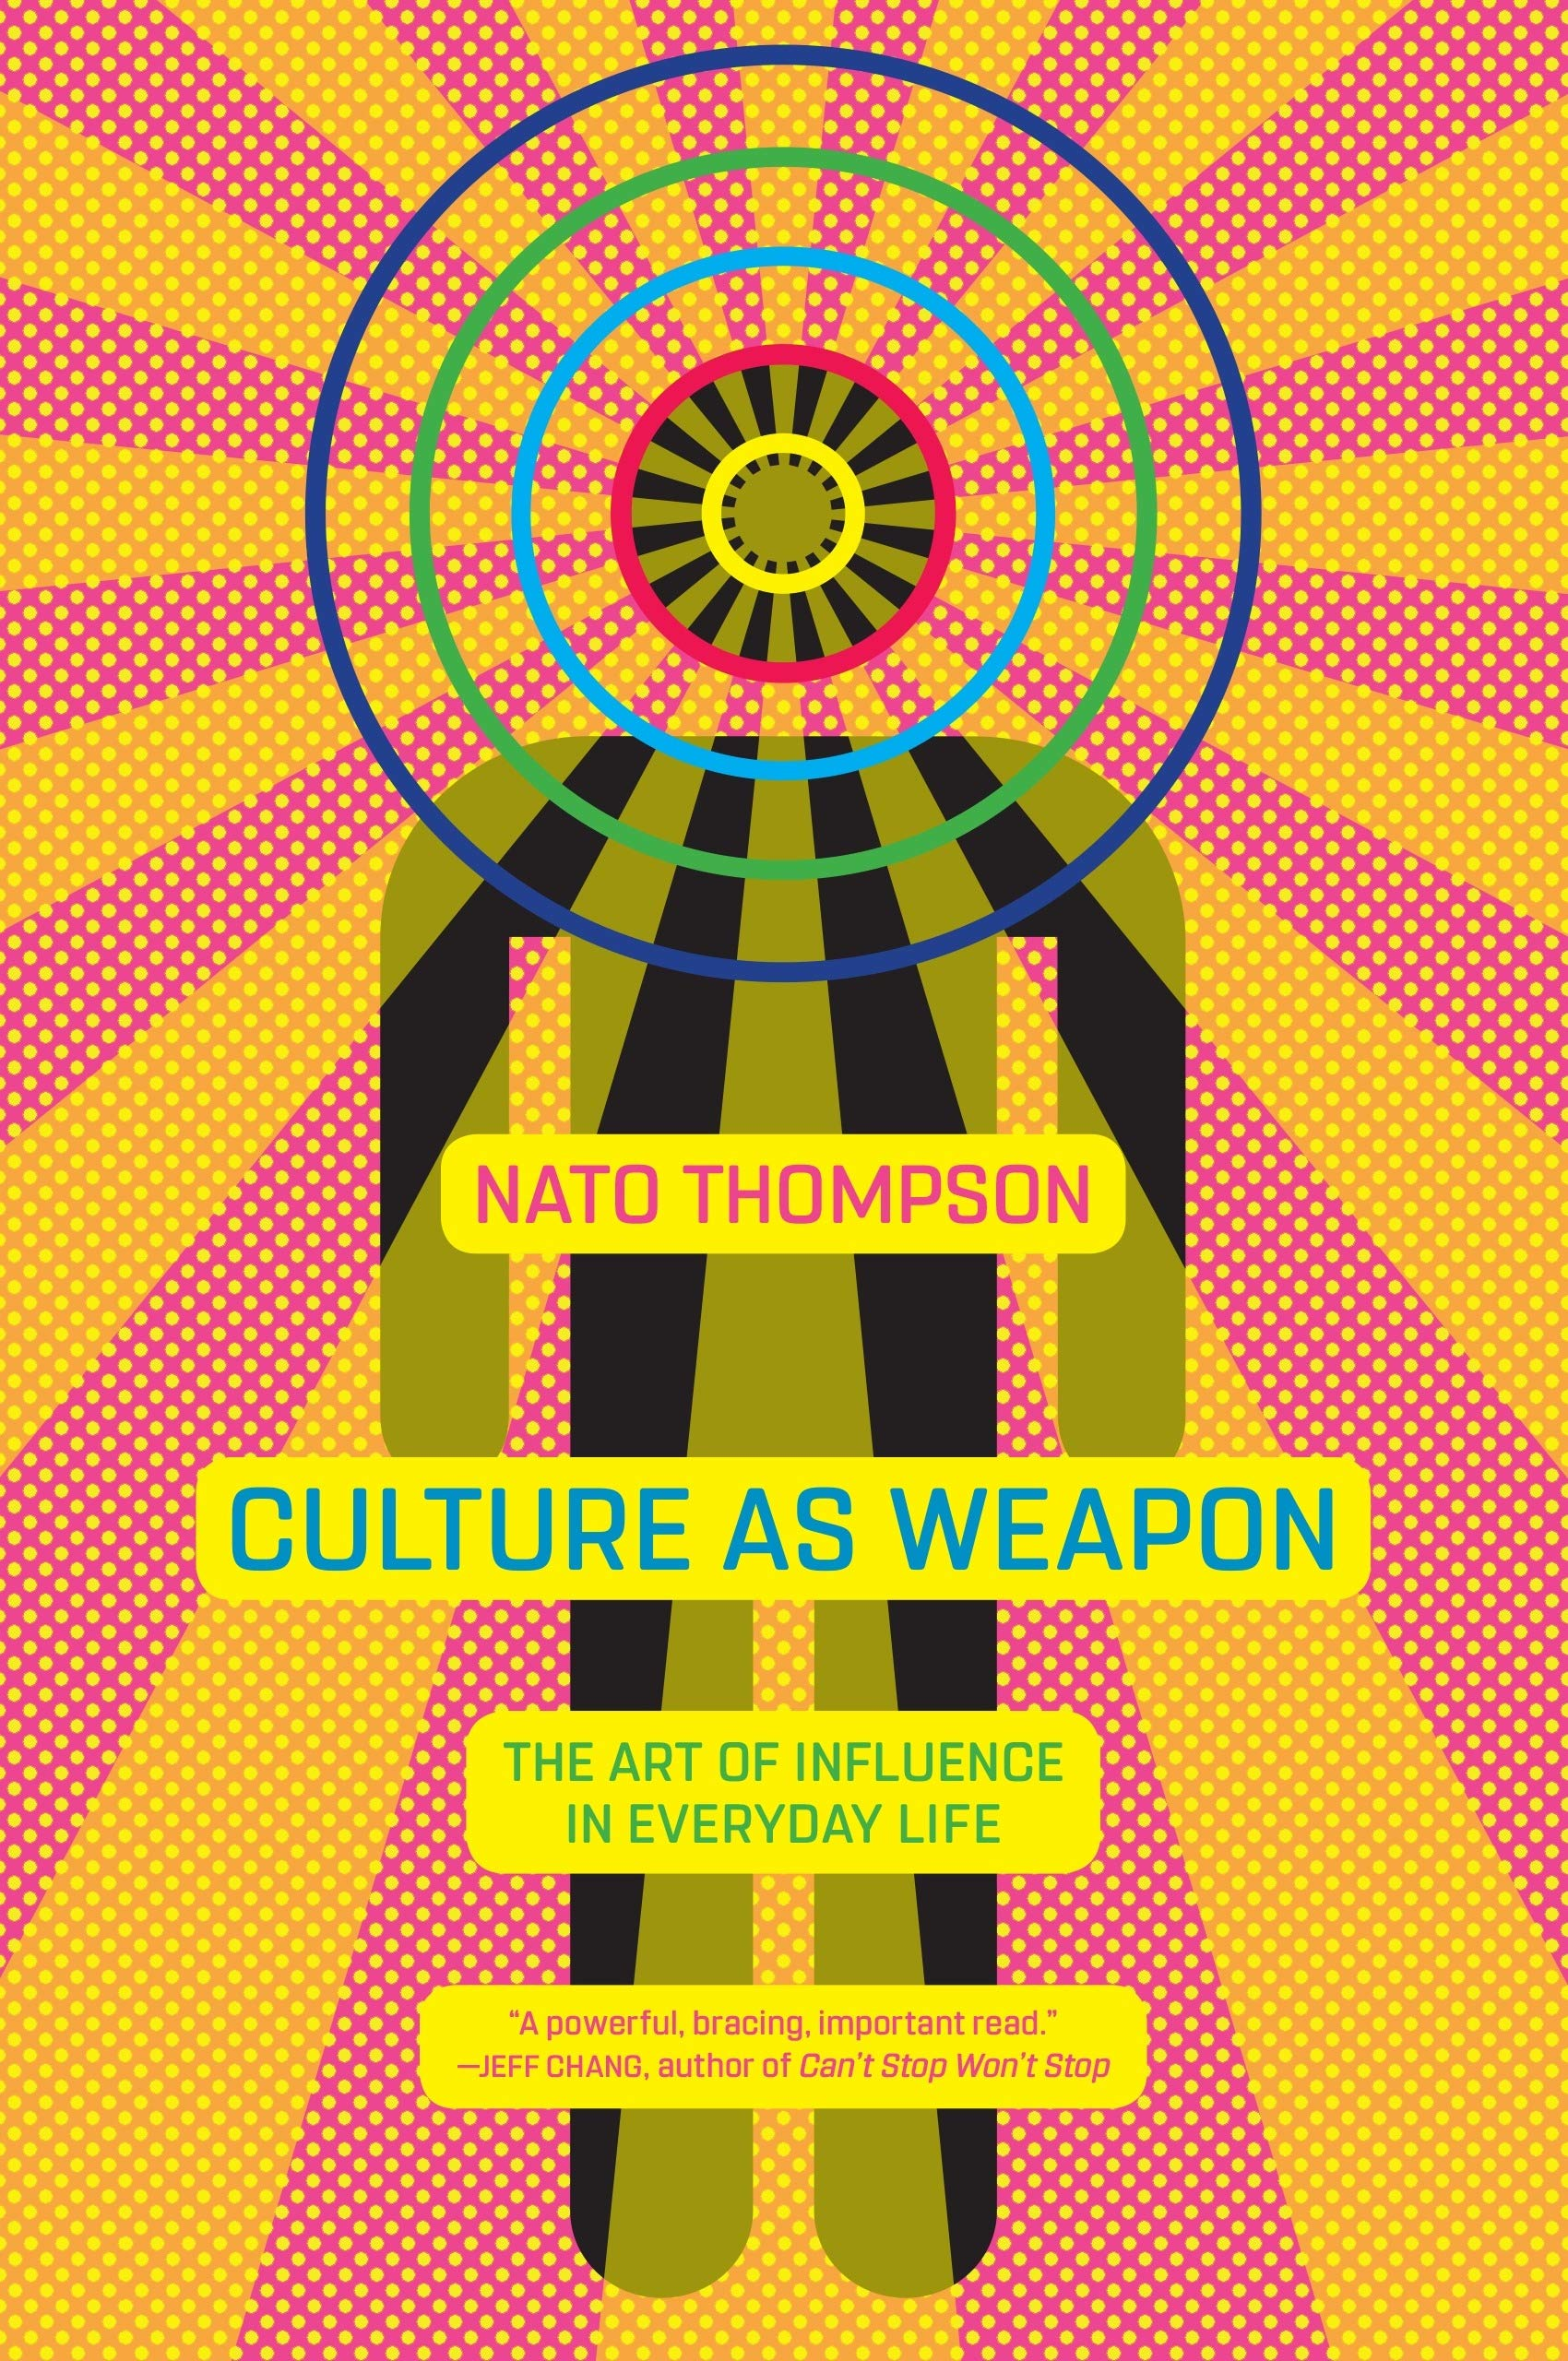 Image OfCulture As Weapon: The Art Of Influence In Everyday Life